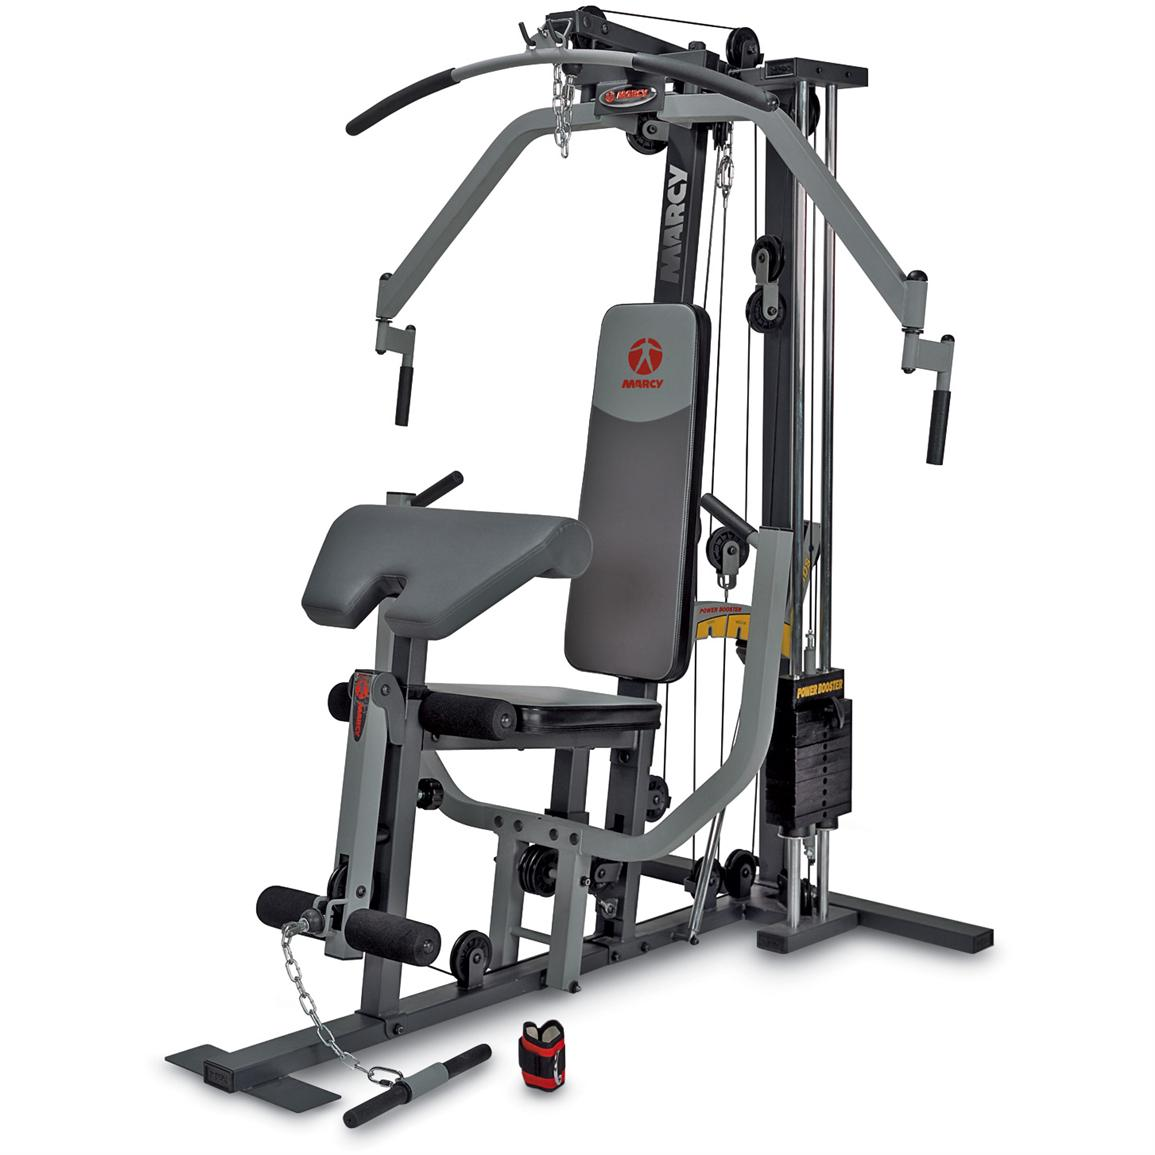 Weight Machine Replacement Parts : Marcy home gym review